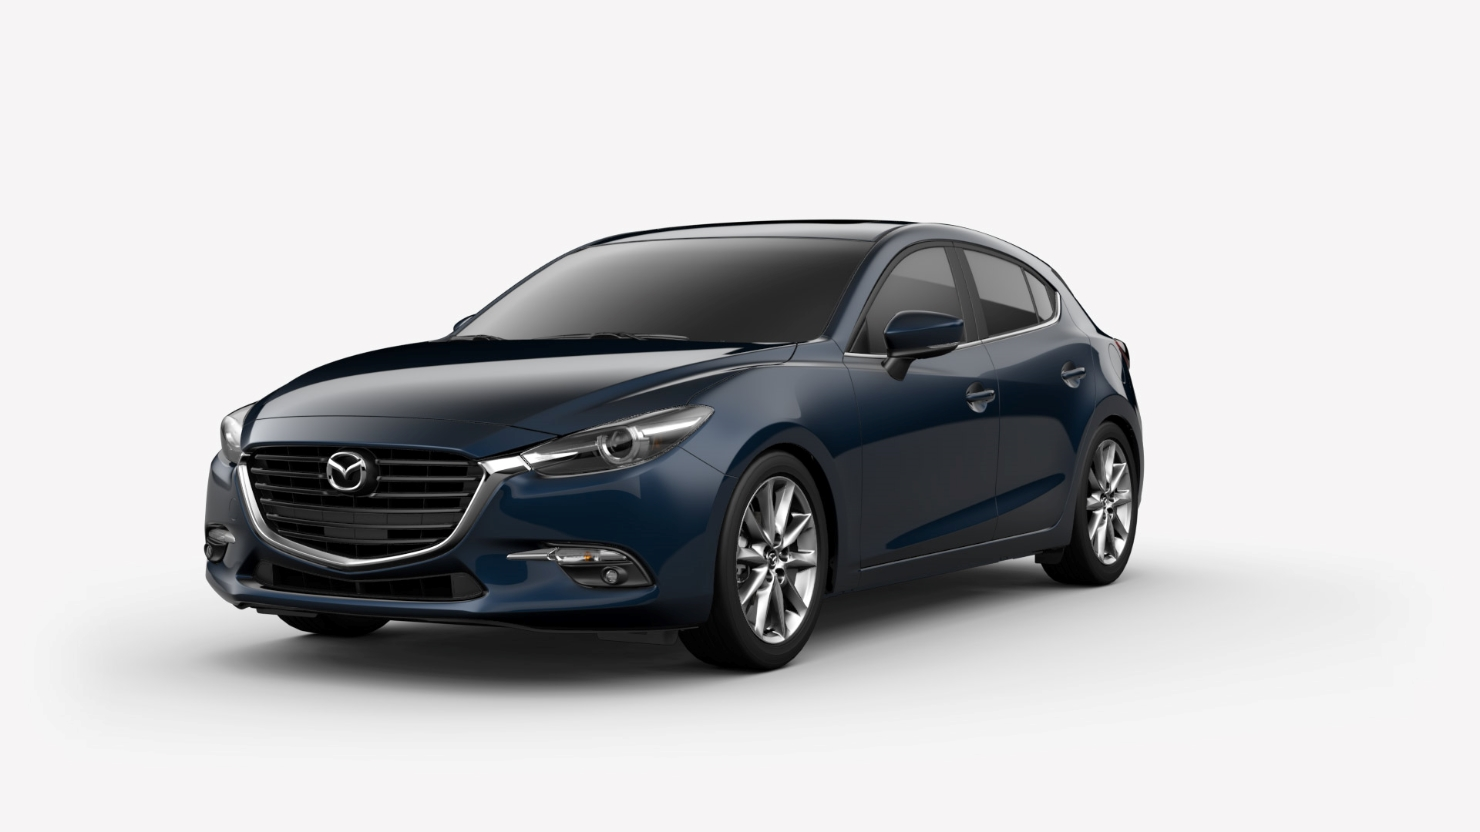 2018 Mazda3 Hatchback, Deep Crystal